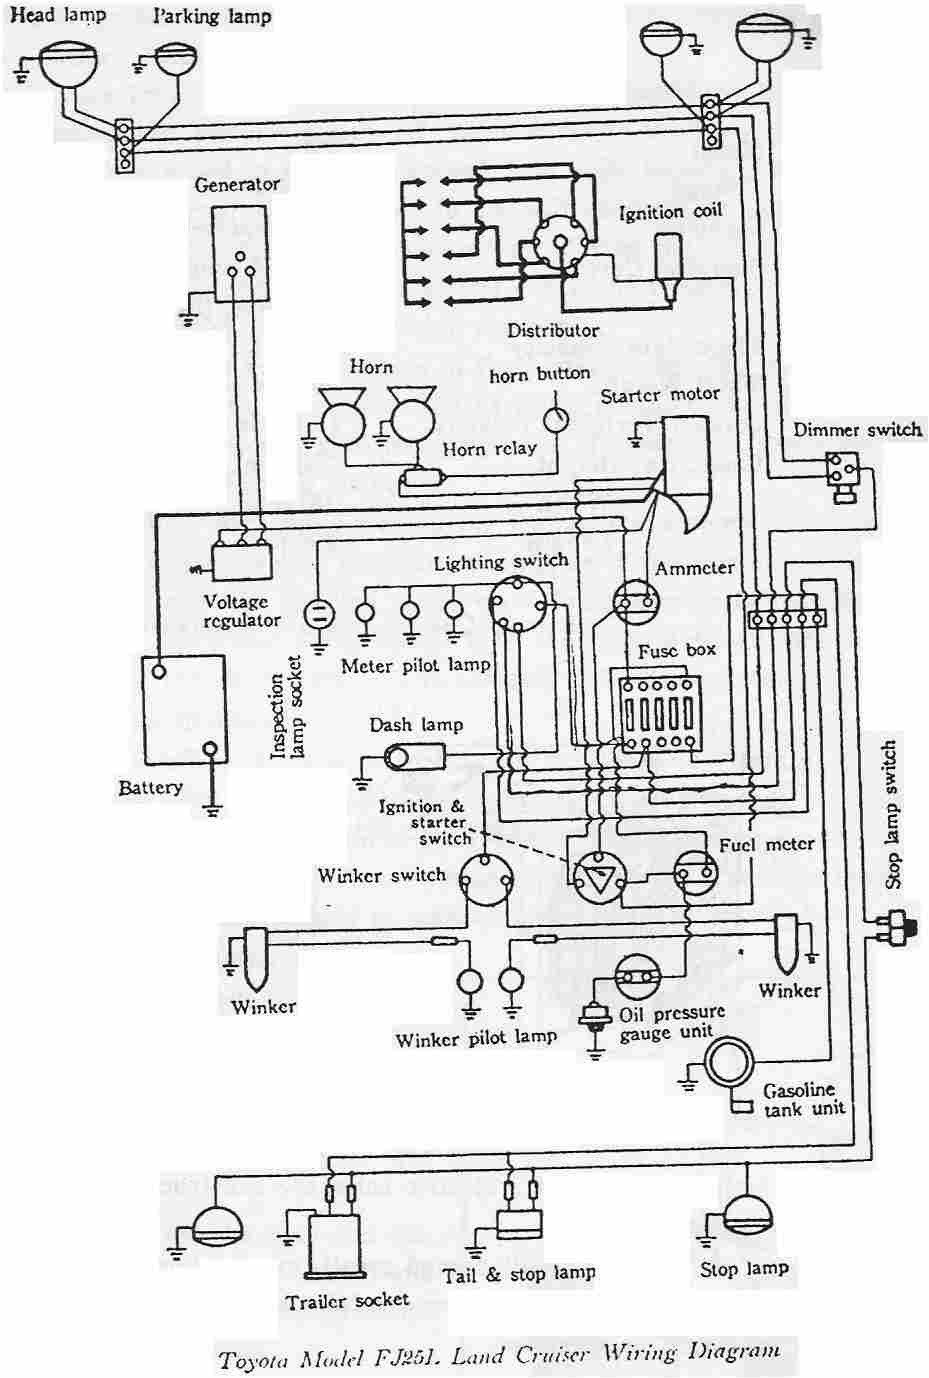 Mitsubishi Forklift Fuse Box Location Trusted Wiring Diagrams Diagram Clark Explained Eclipse